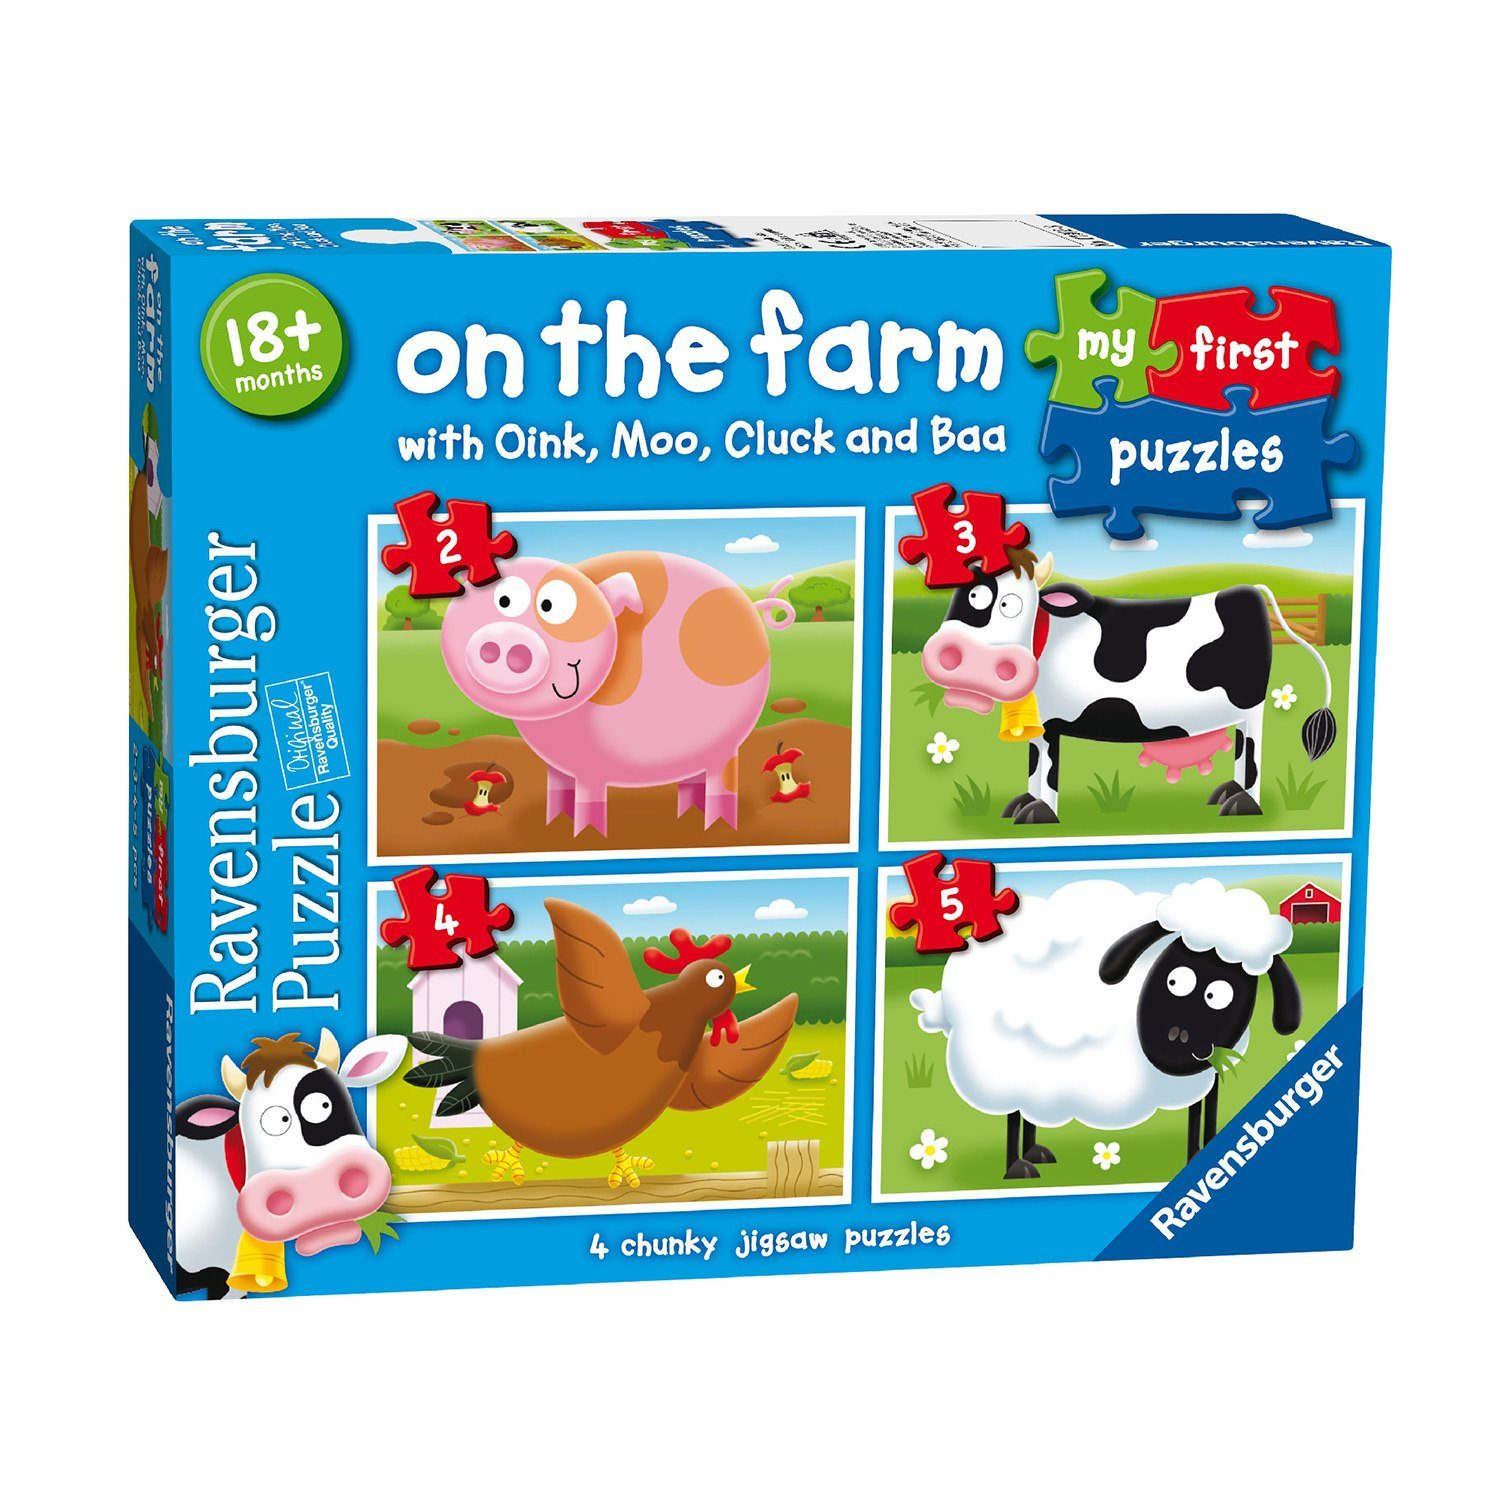 Ravensburger - On the Farm My First Puzzle 2 3 4 5 pieces Jigsaw Puzzle